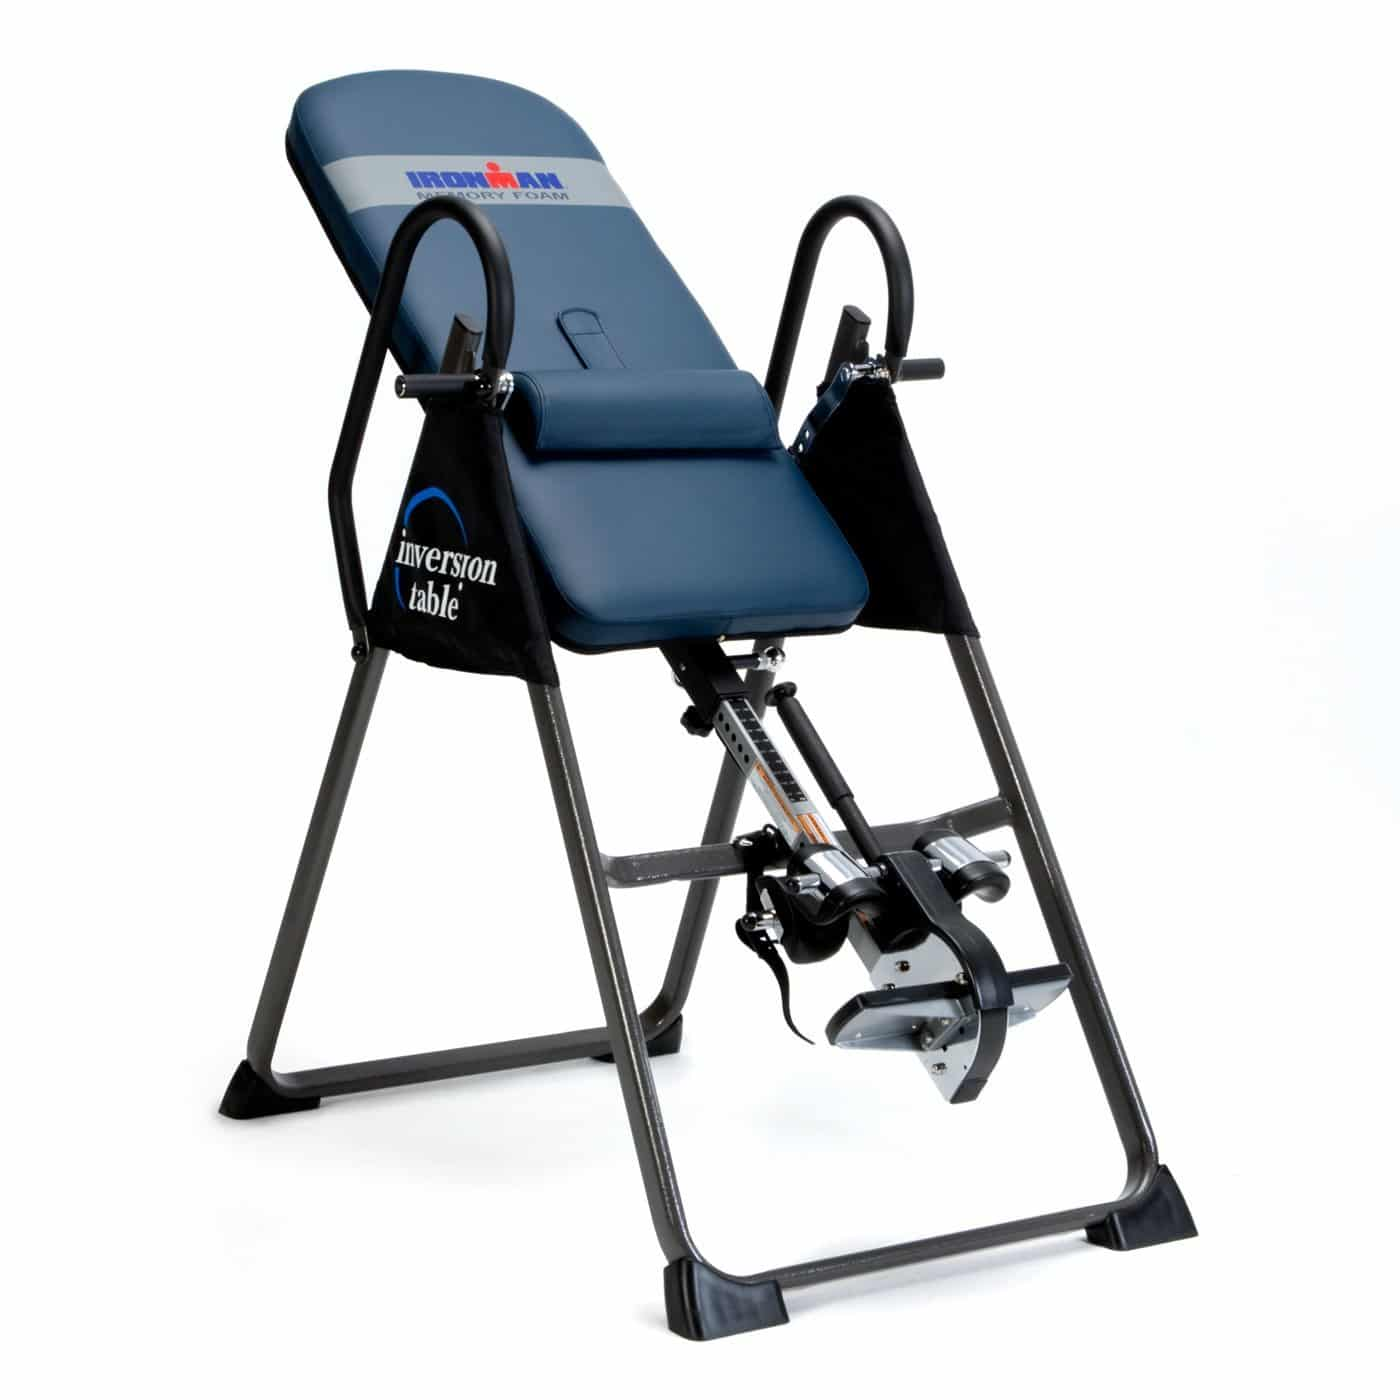 Ironman Gravity 4000 Inversion Table Manual